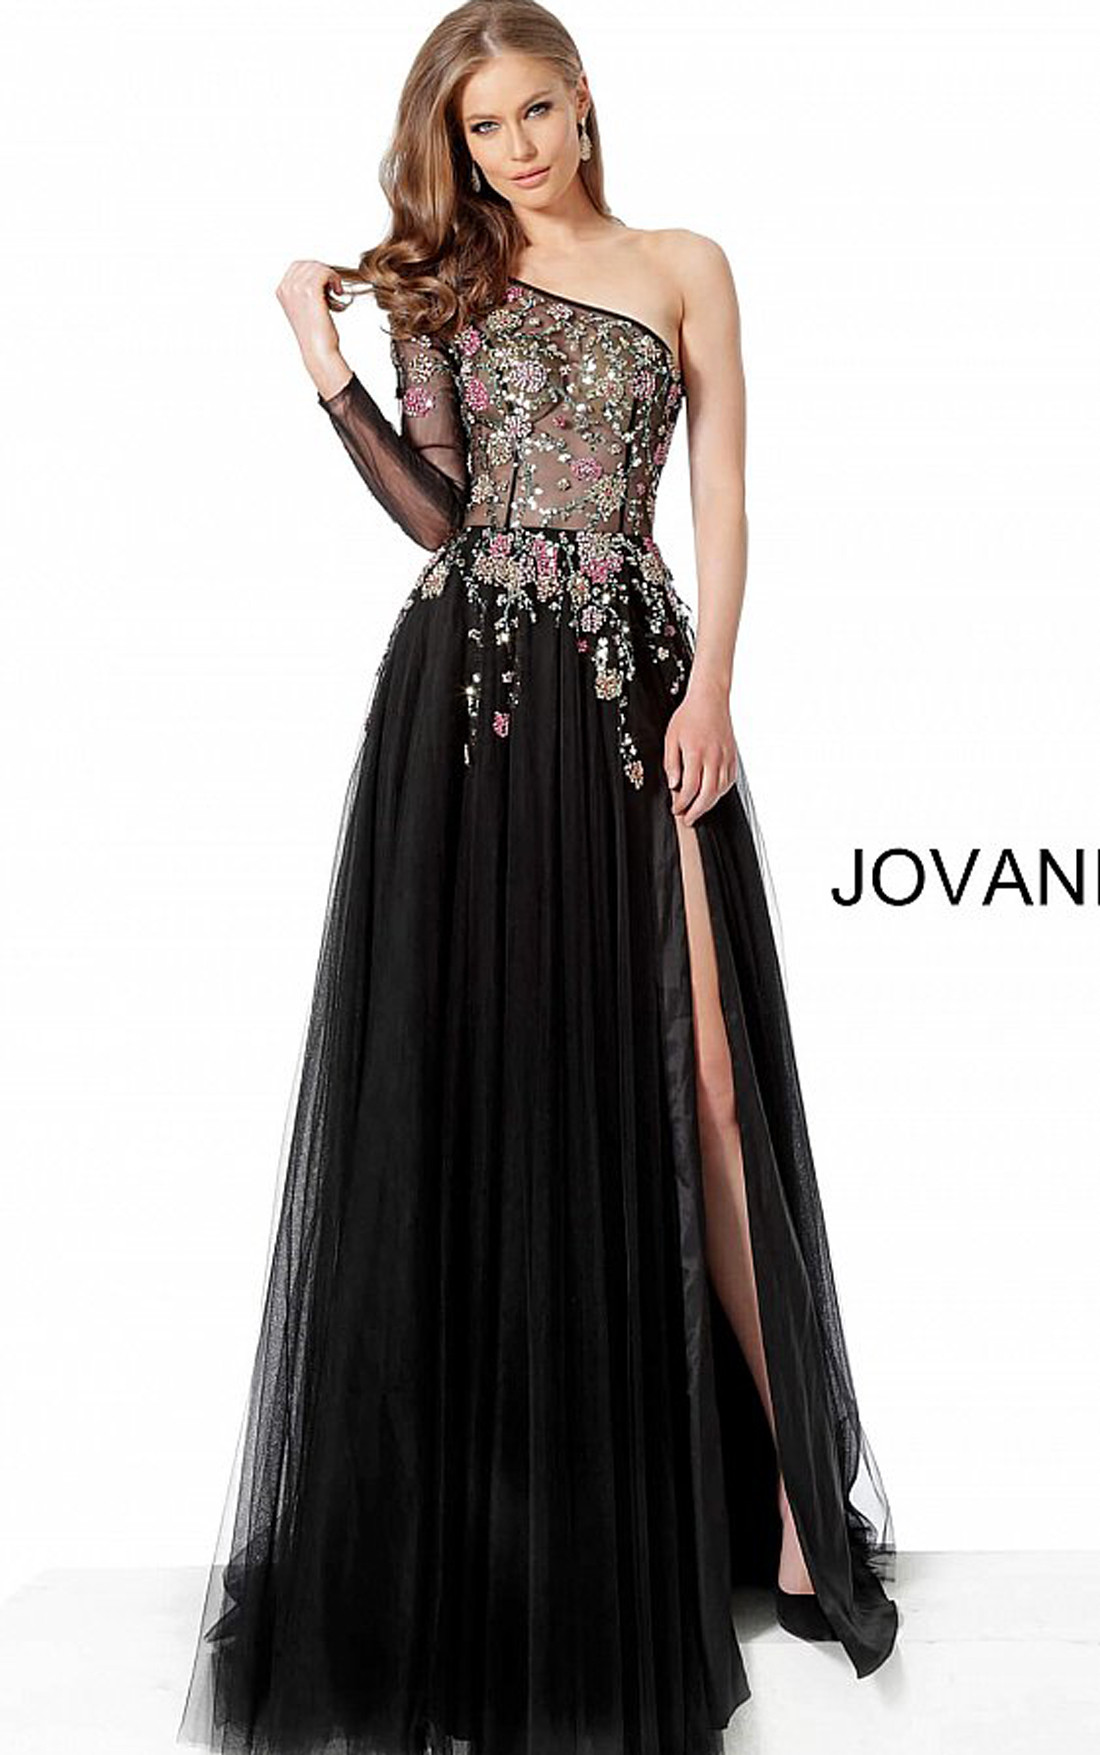 Jovani - Black One Shoulder Embellished High Slit Gown (66344)